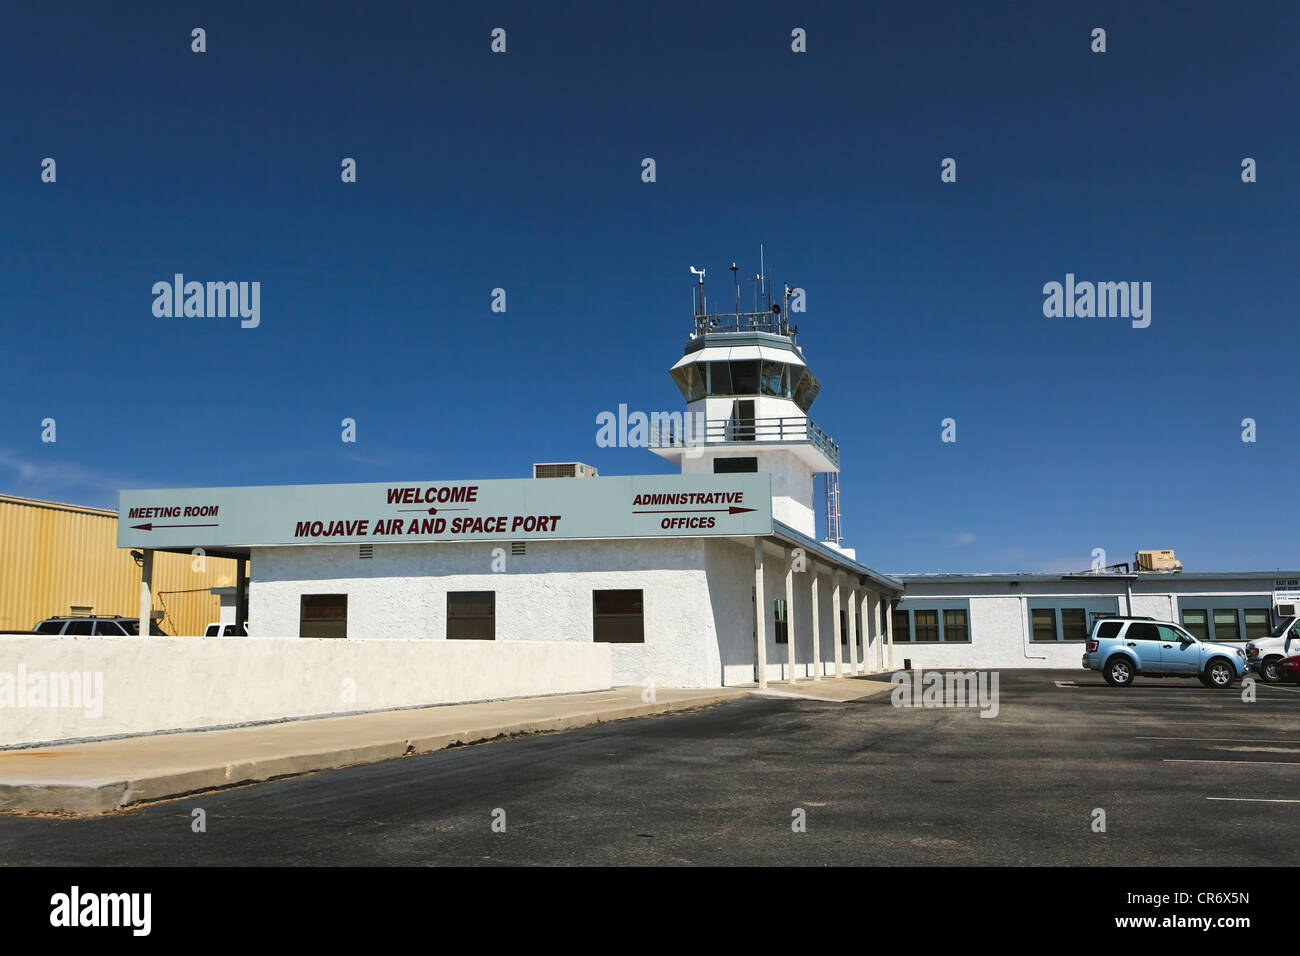 Control Tower of the Mojave Air and Spaceport, Mojave, California - Stock Image